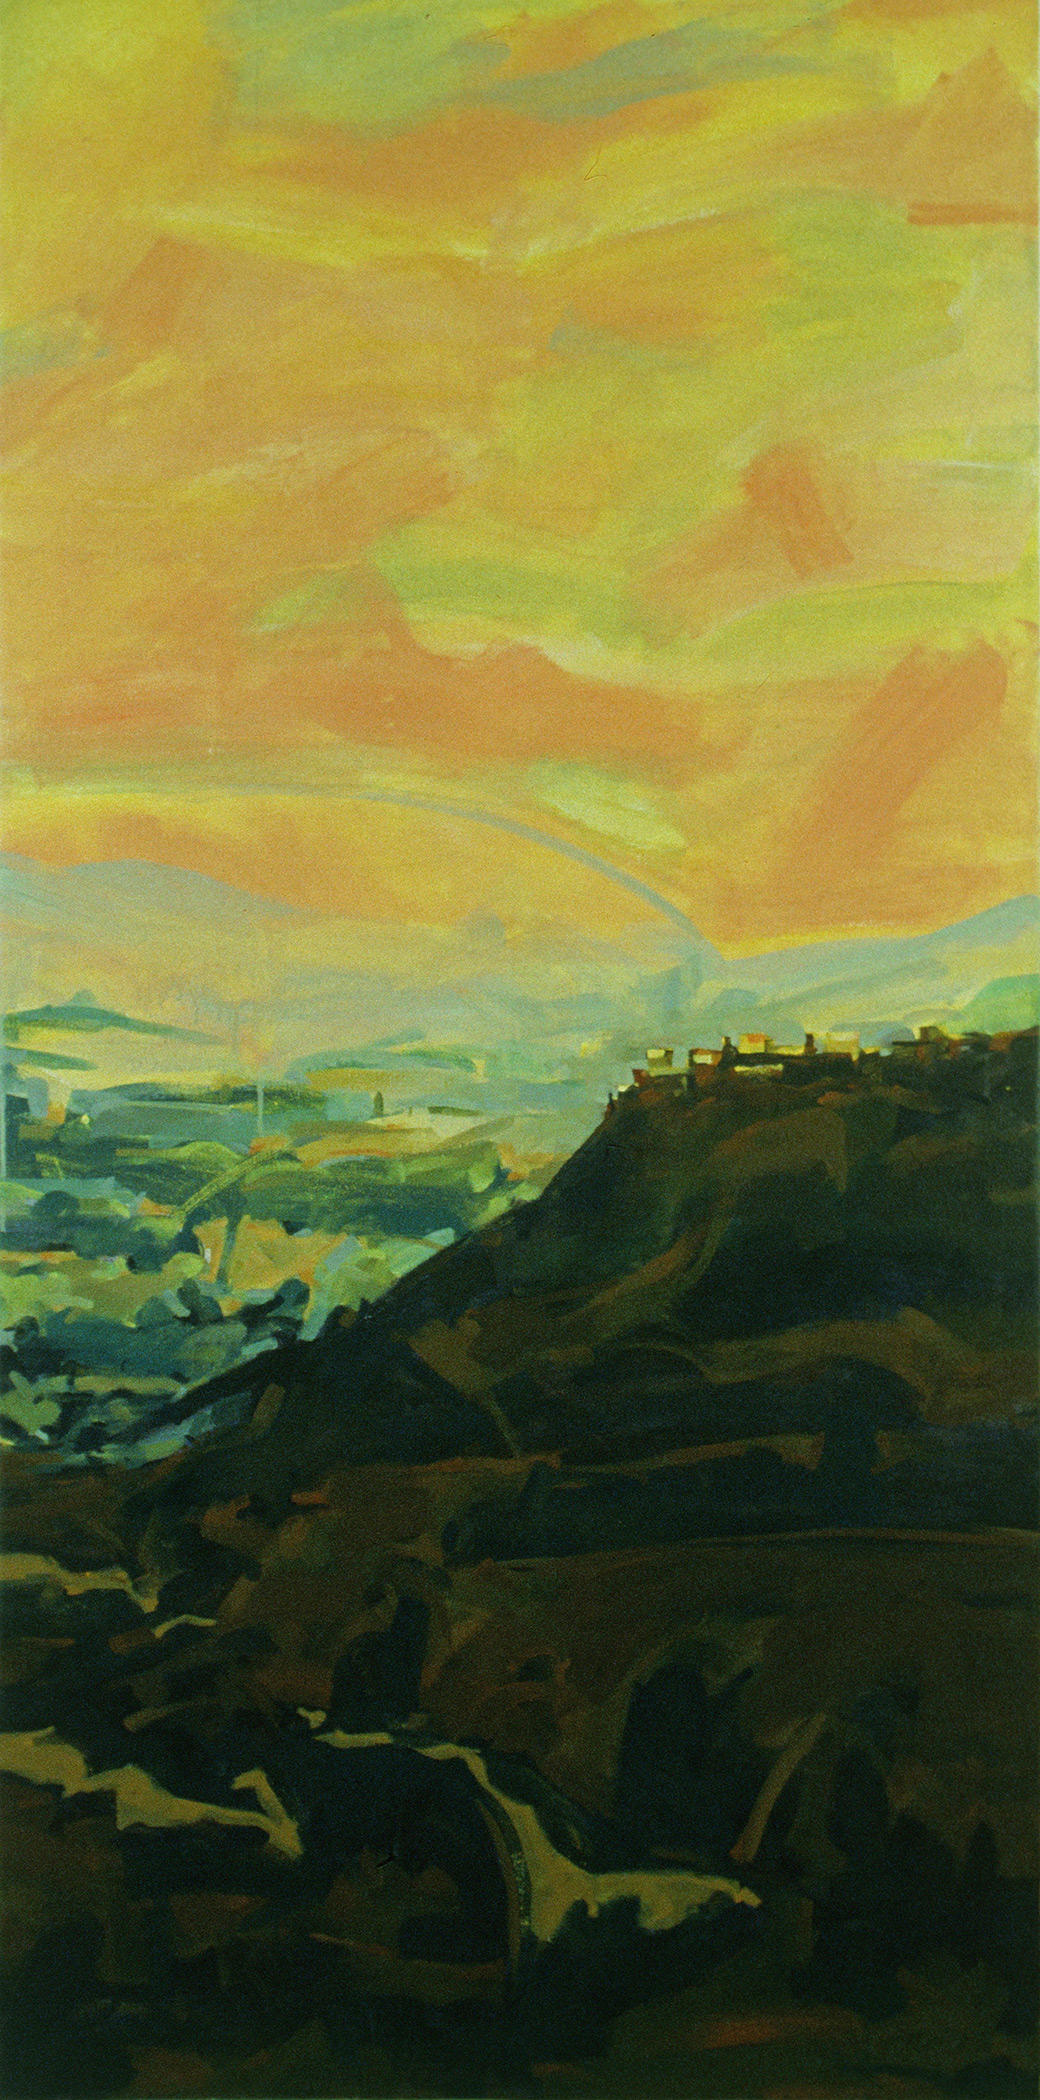 "Acrylic on Canvas, 65.5 x 32.25"", L99A17-5, 1999, Collection Dan Warrick and Karen Berg"